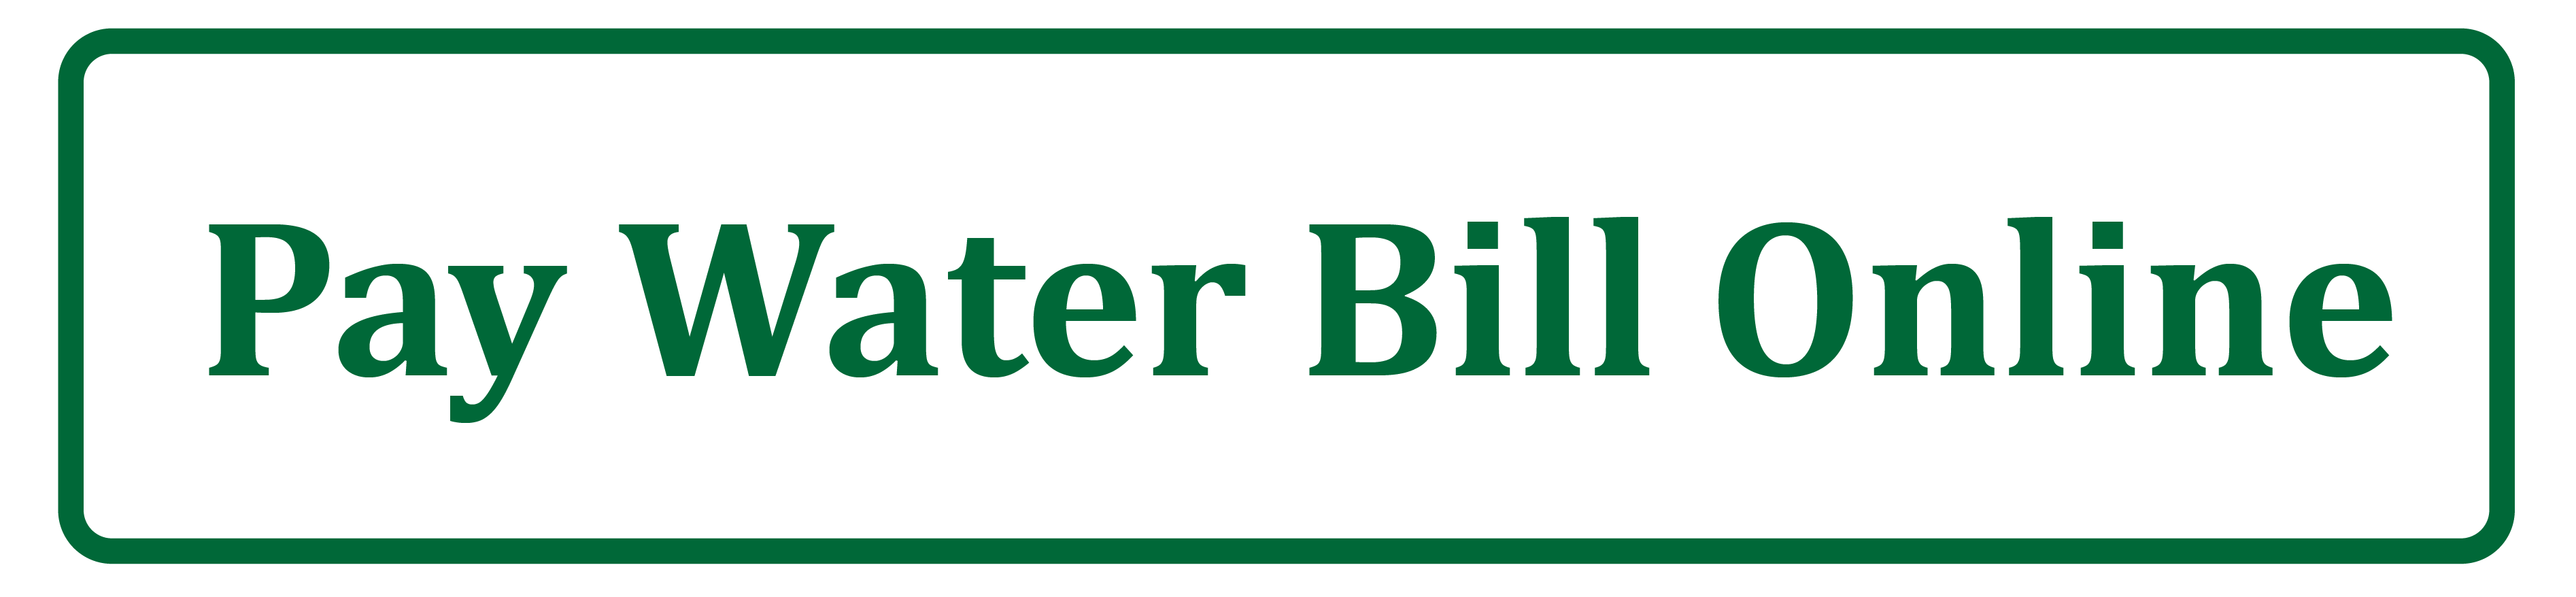 View or Pay Water Bill Online | Lockport, IL - Official Website